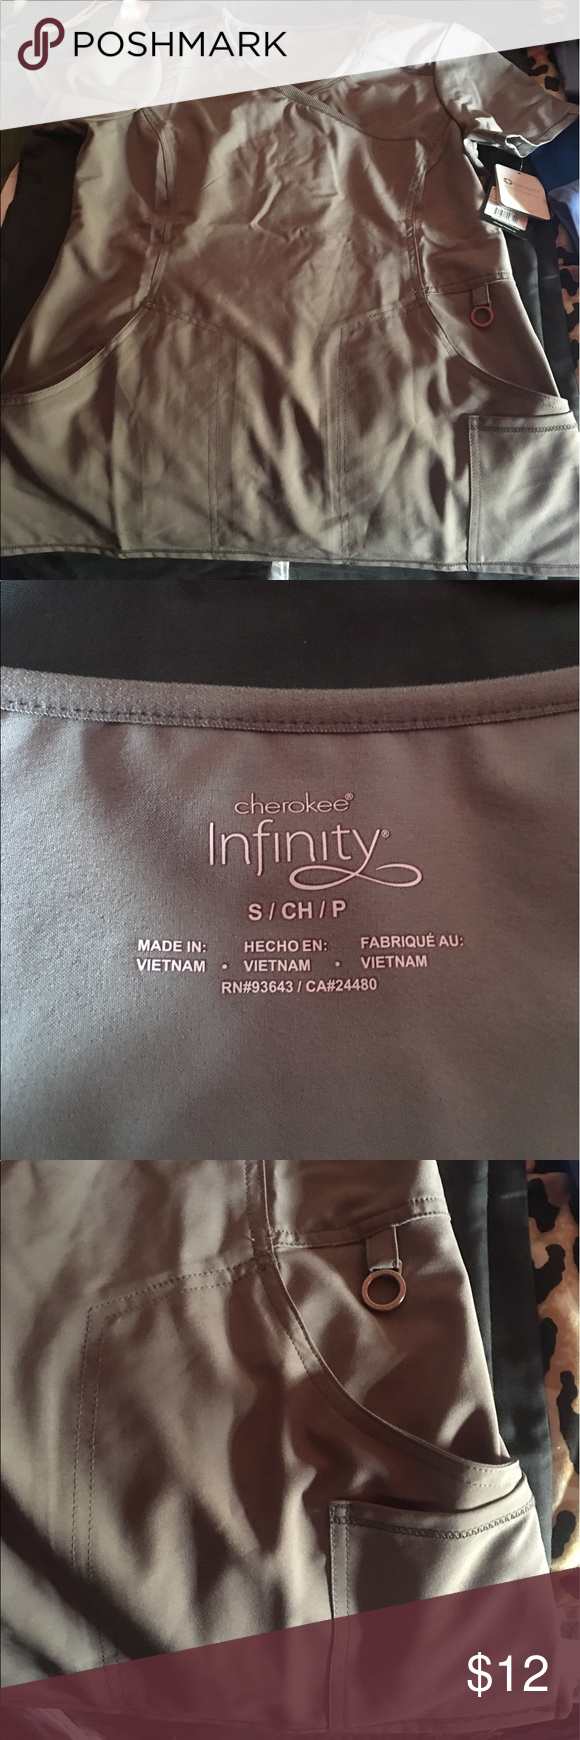 Small Scrub Top Cherokee Infinity top. Grey. No bottoms available. Great stretchy material. A lot of pockets. Original price 31.99 Cherokee Tops Tees - Short Sleeve